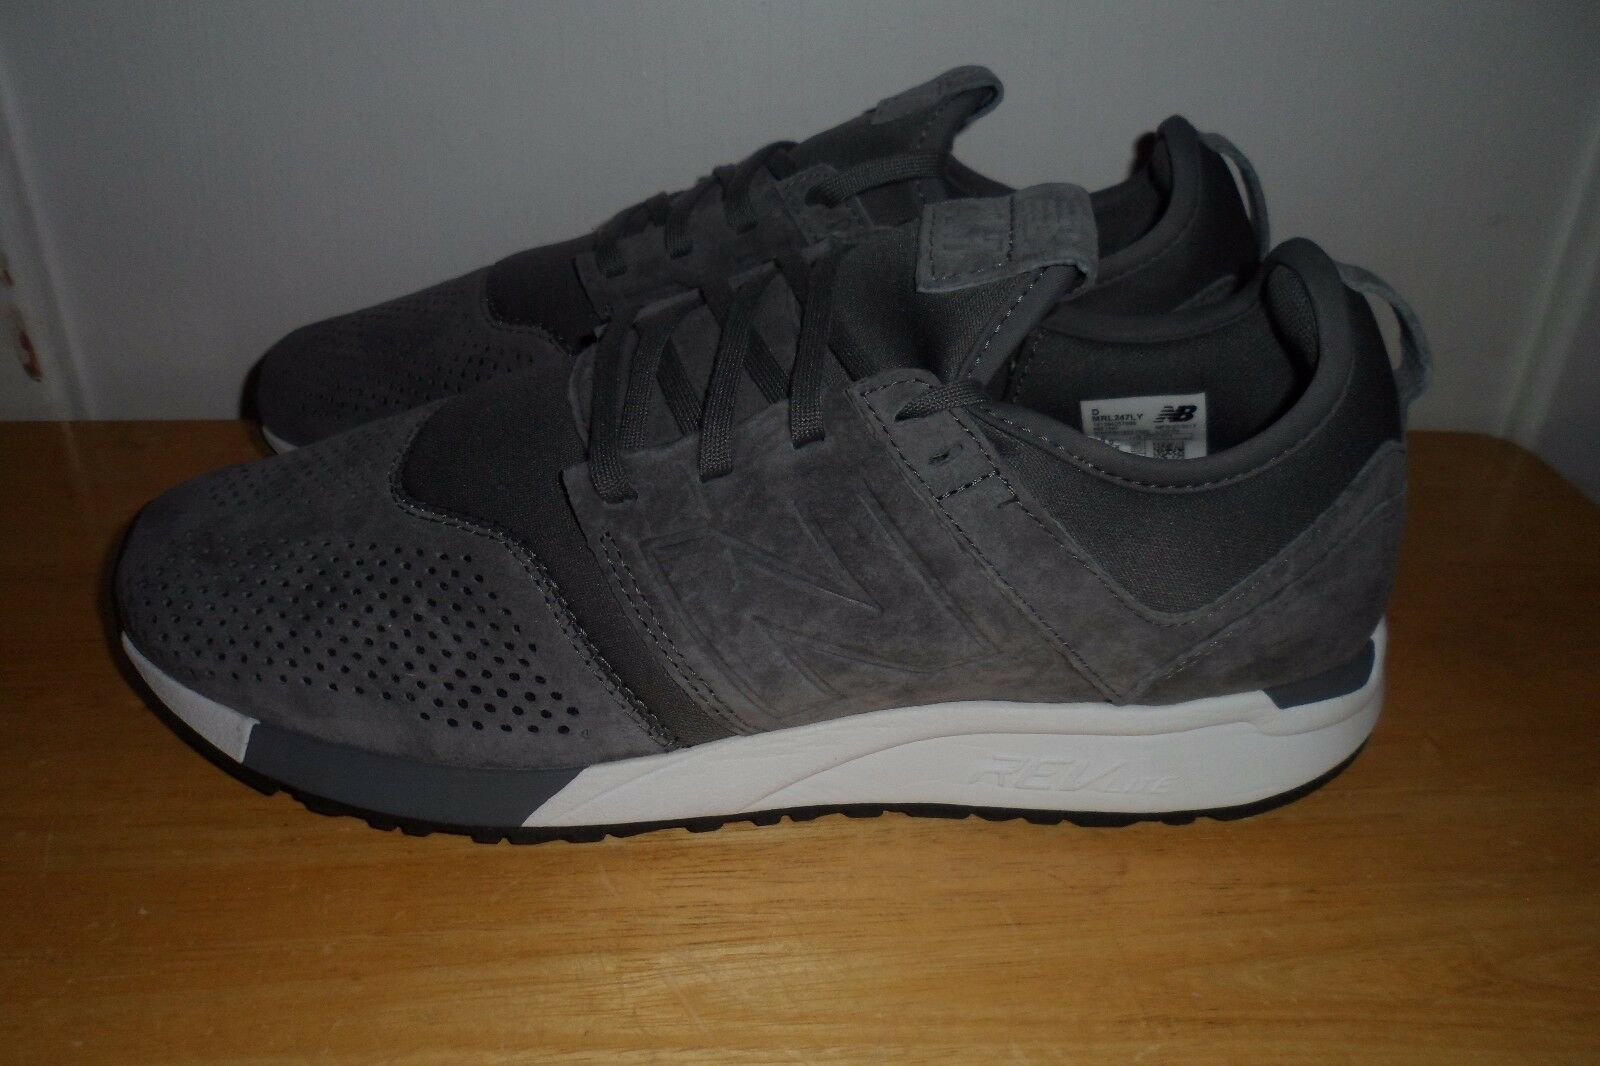 MUST SEE FABULOUS NEW BALANCE 247 SUEDE GREY Uomo 9 D EEUC LN TRIED ON ONLY